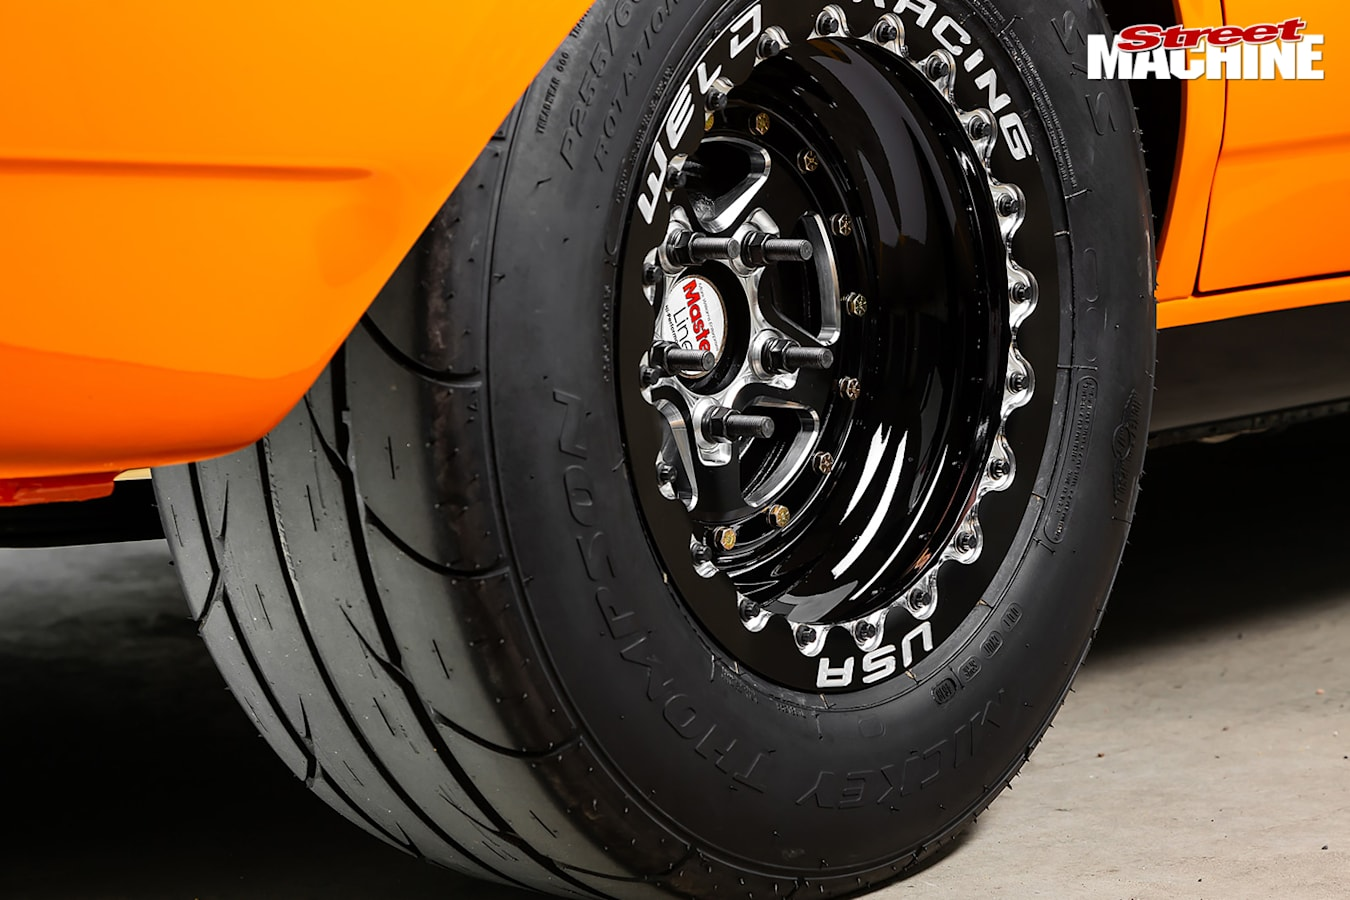 Street Machine Features Ford Falcon Wheel